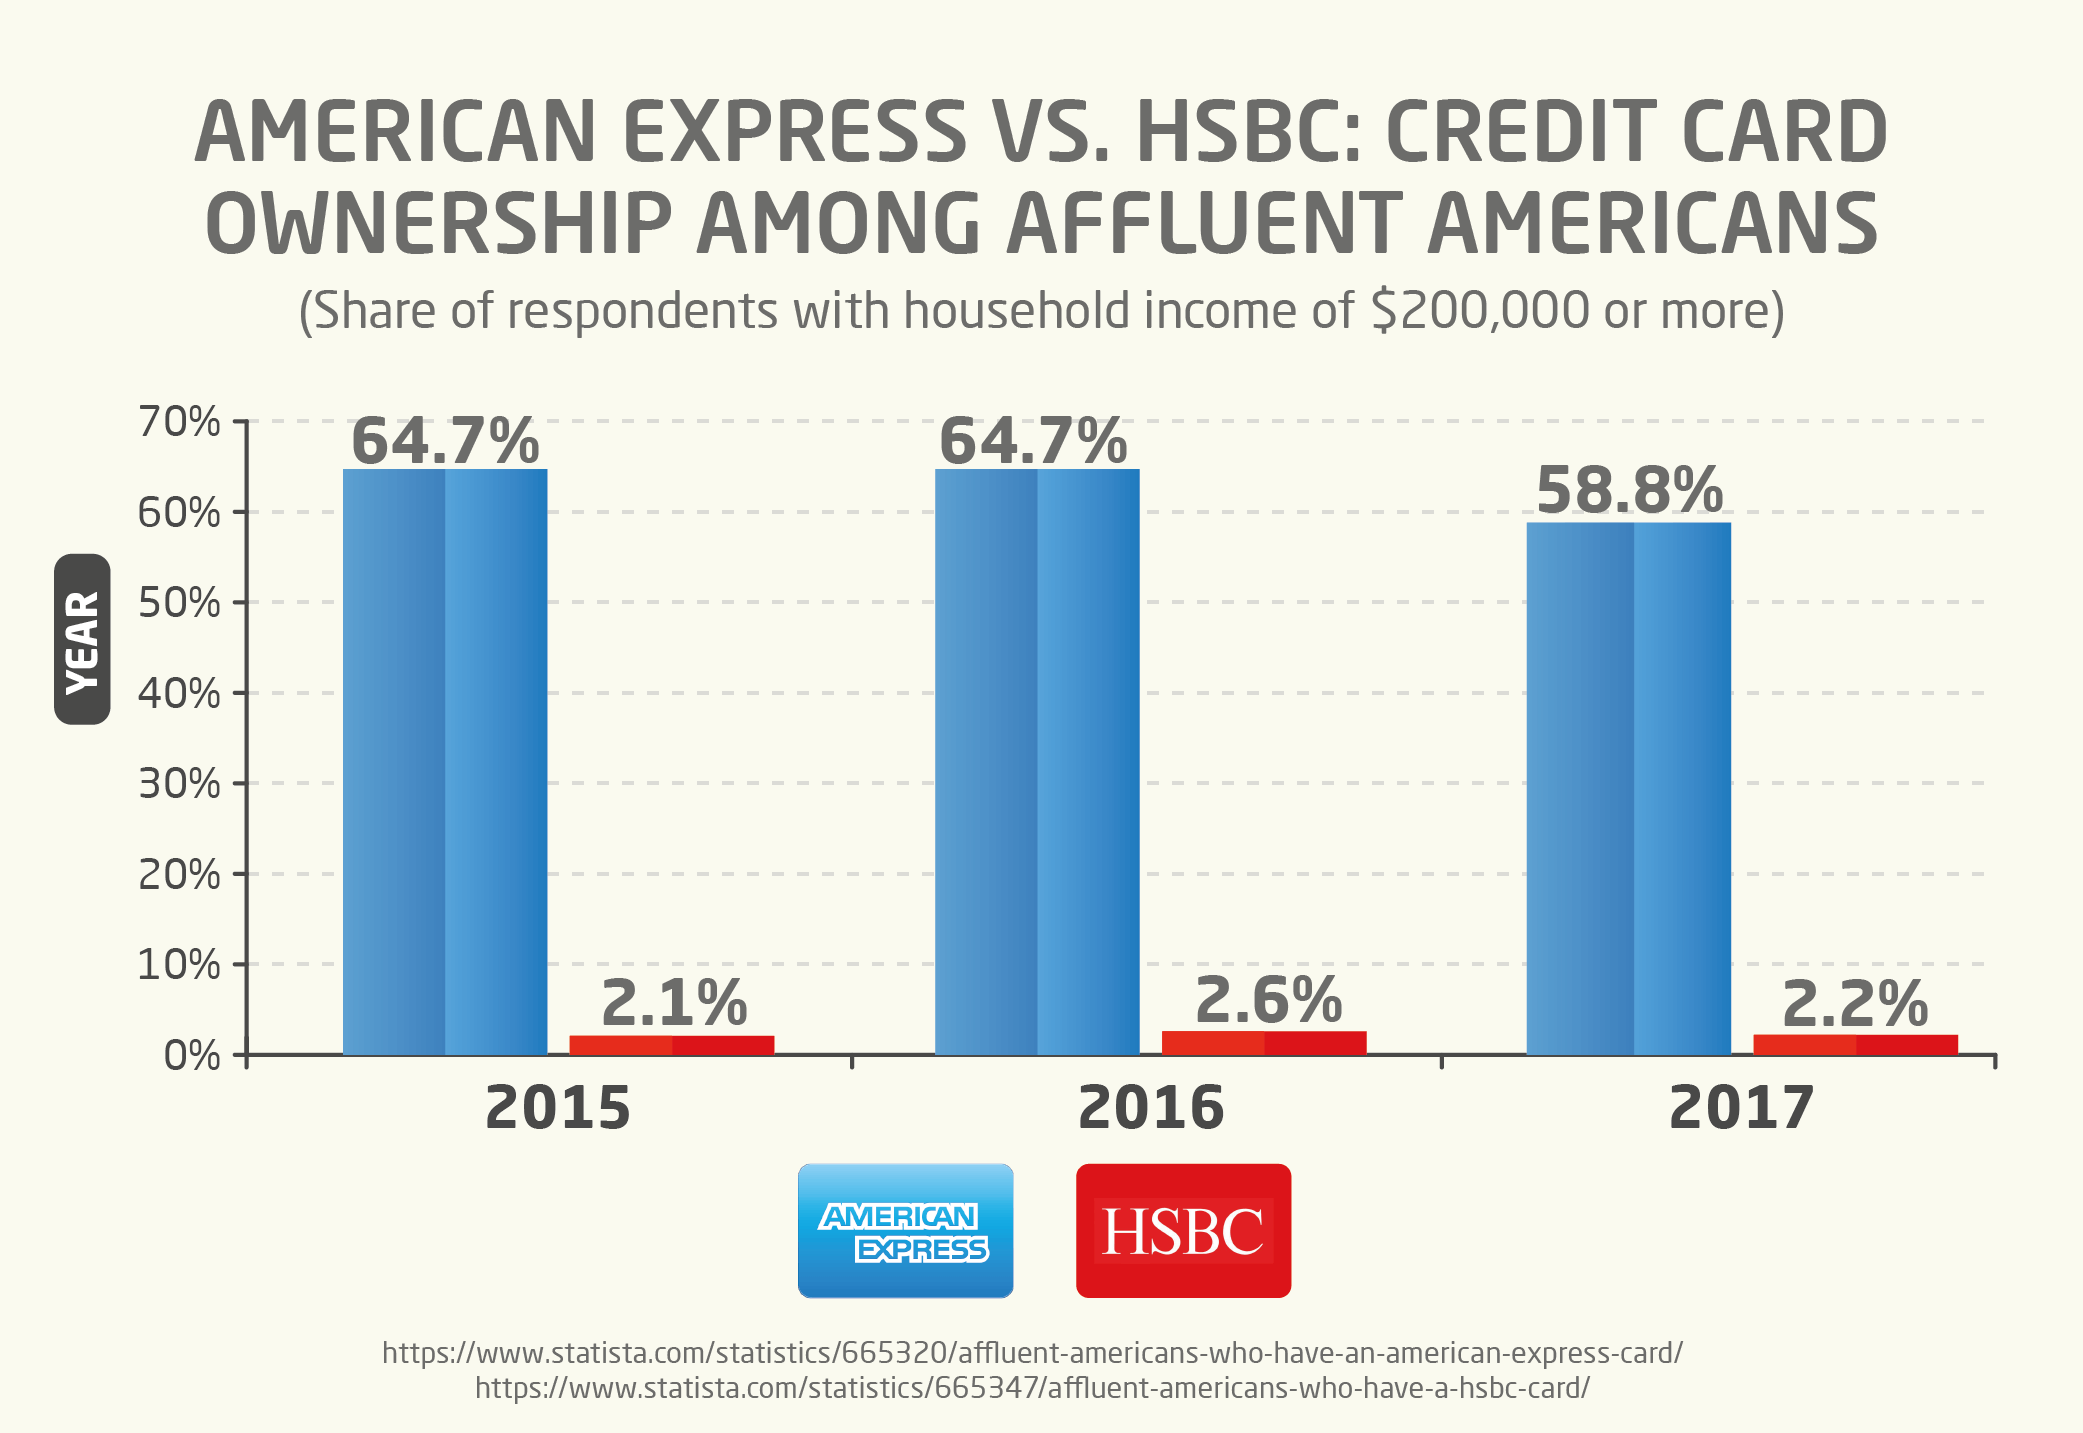 American Express vs. HSBC: Credit Card Ownership Among Affluent Americans